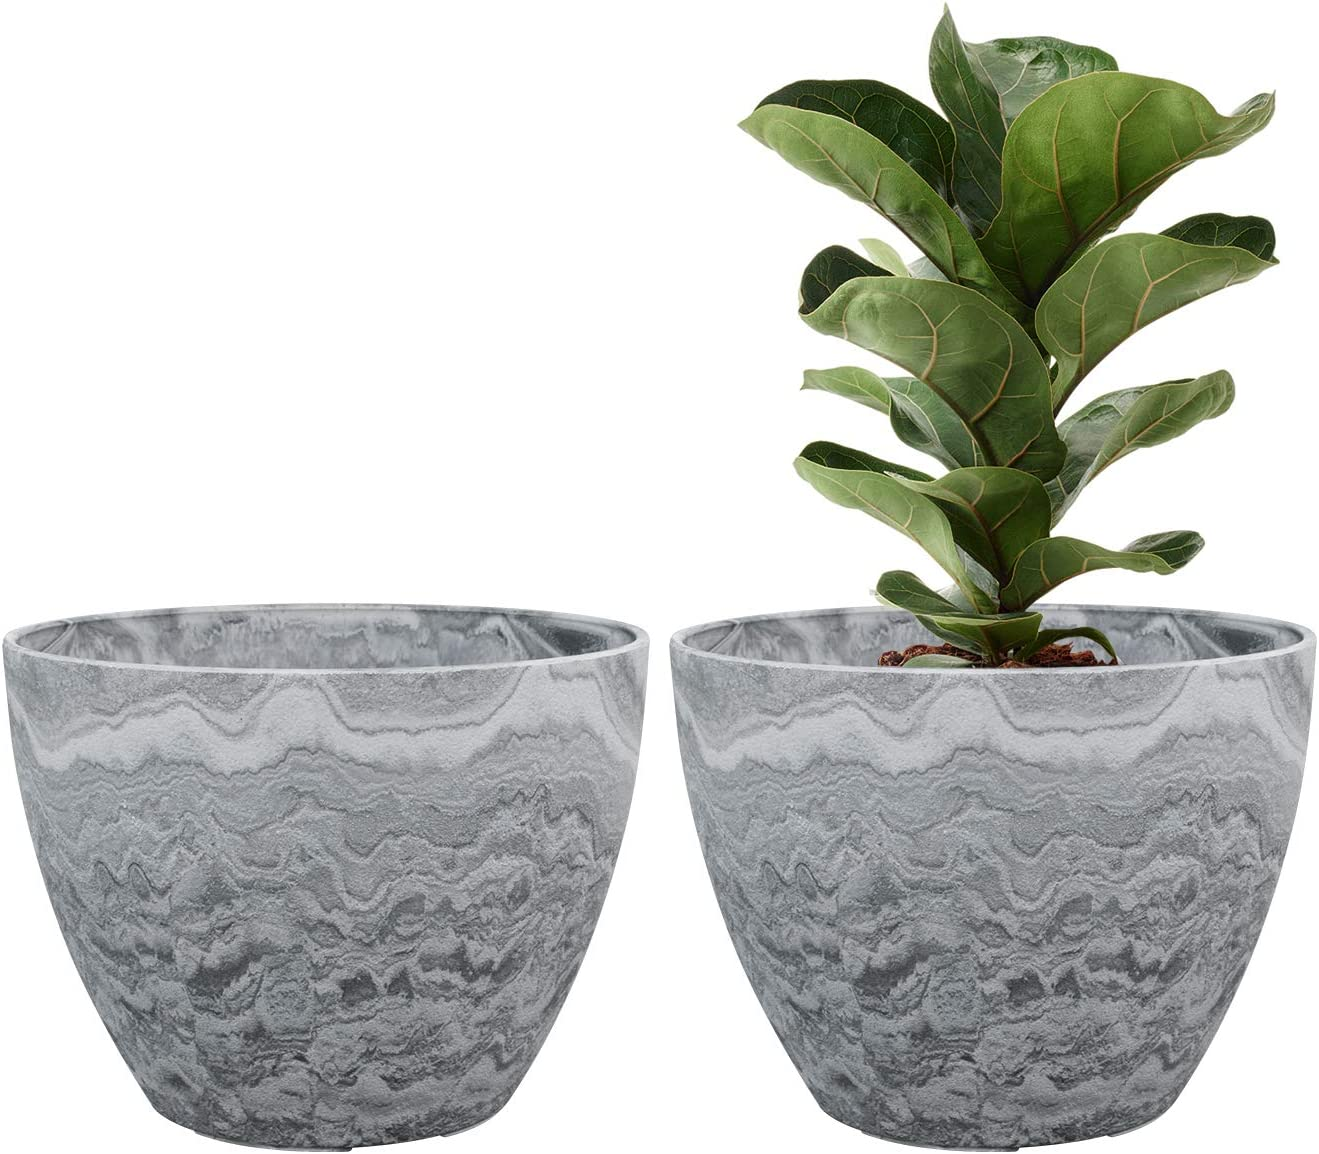 Flower Pot Large Garden Planters 11.3 Inches Pack 2 Outdoor Indoor, Resin Plant Containers with Drain Hole (Marble)